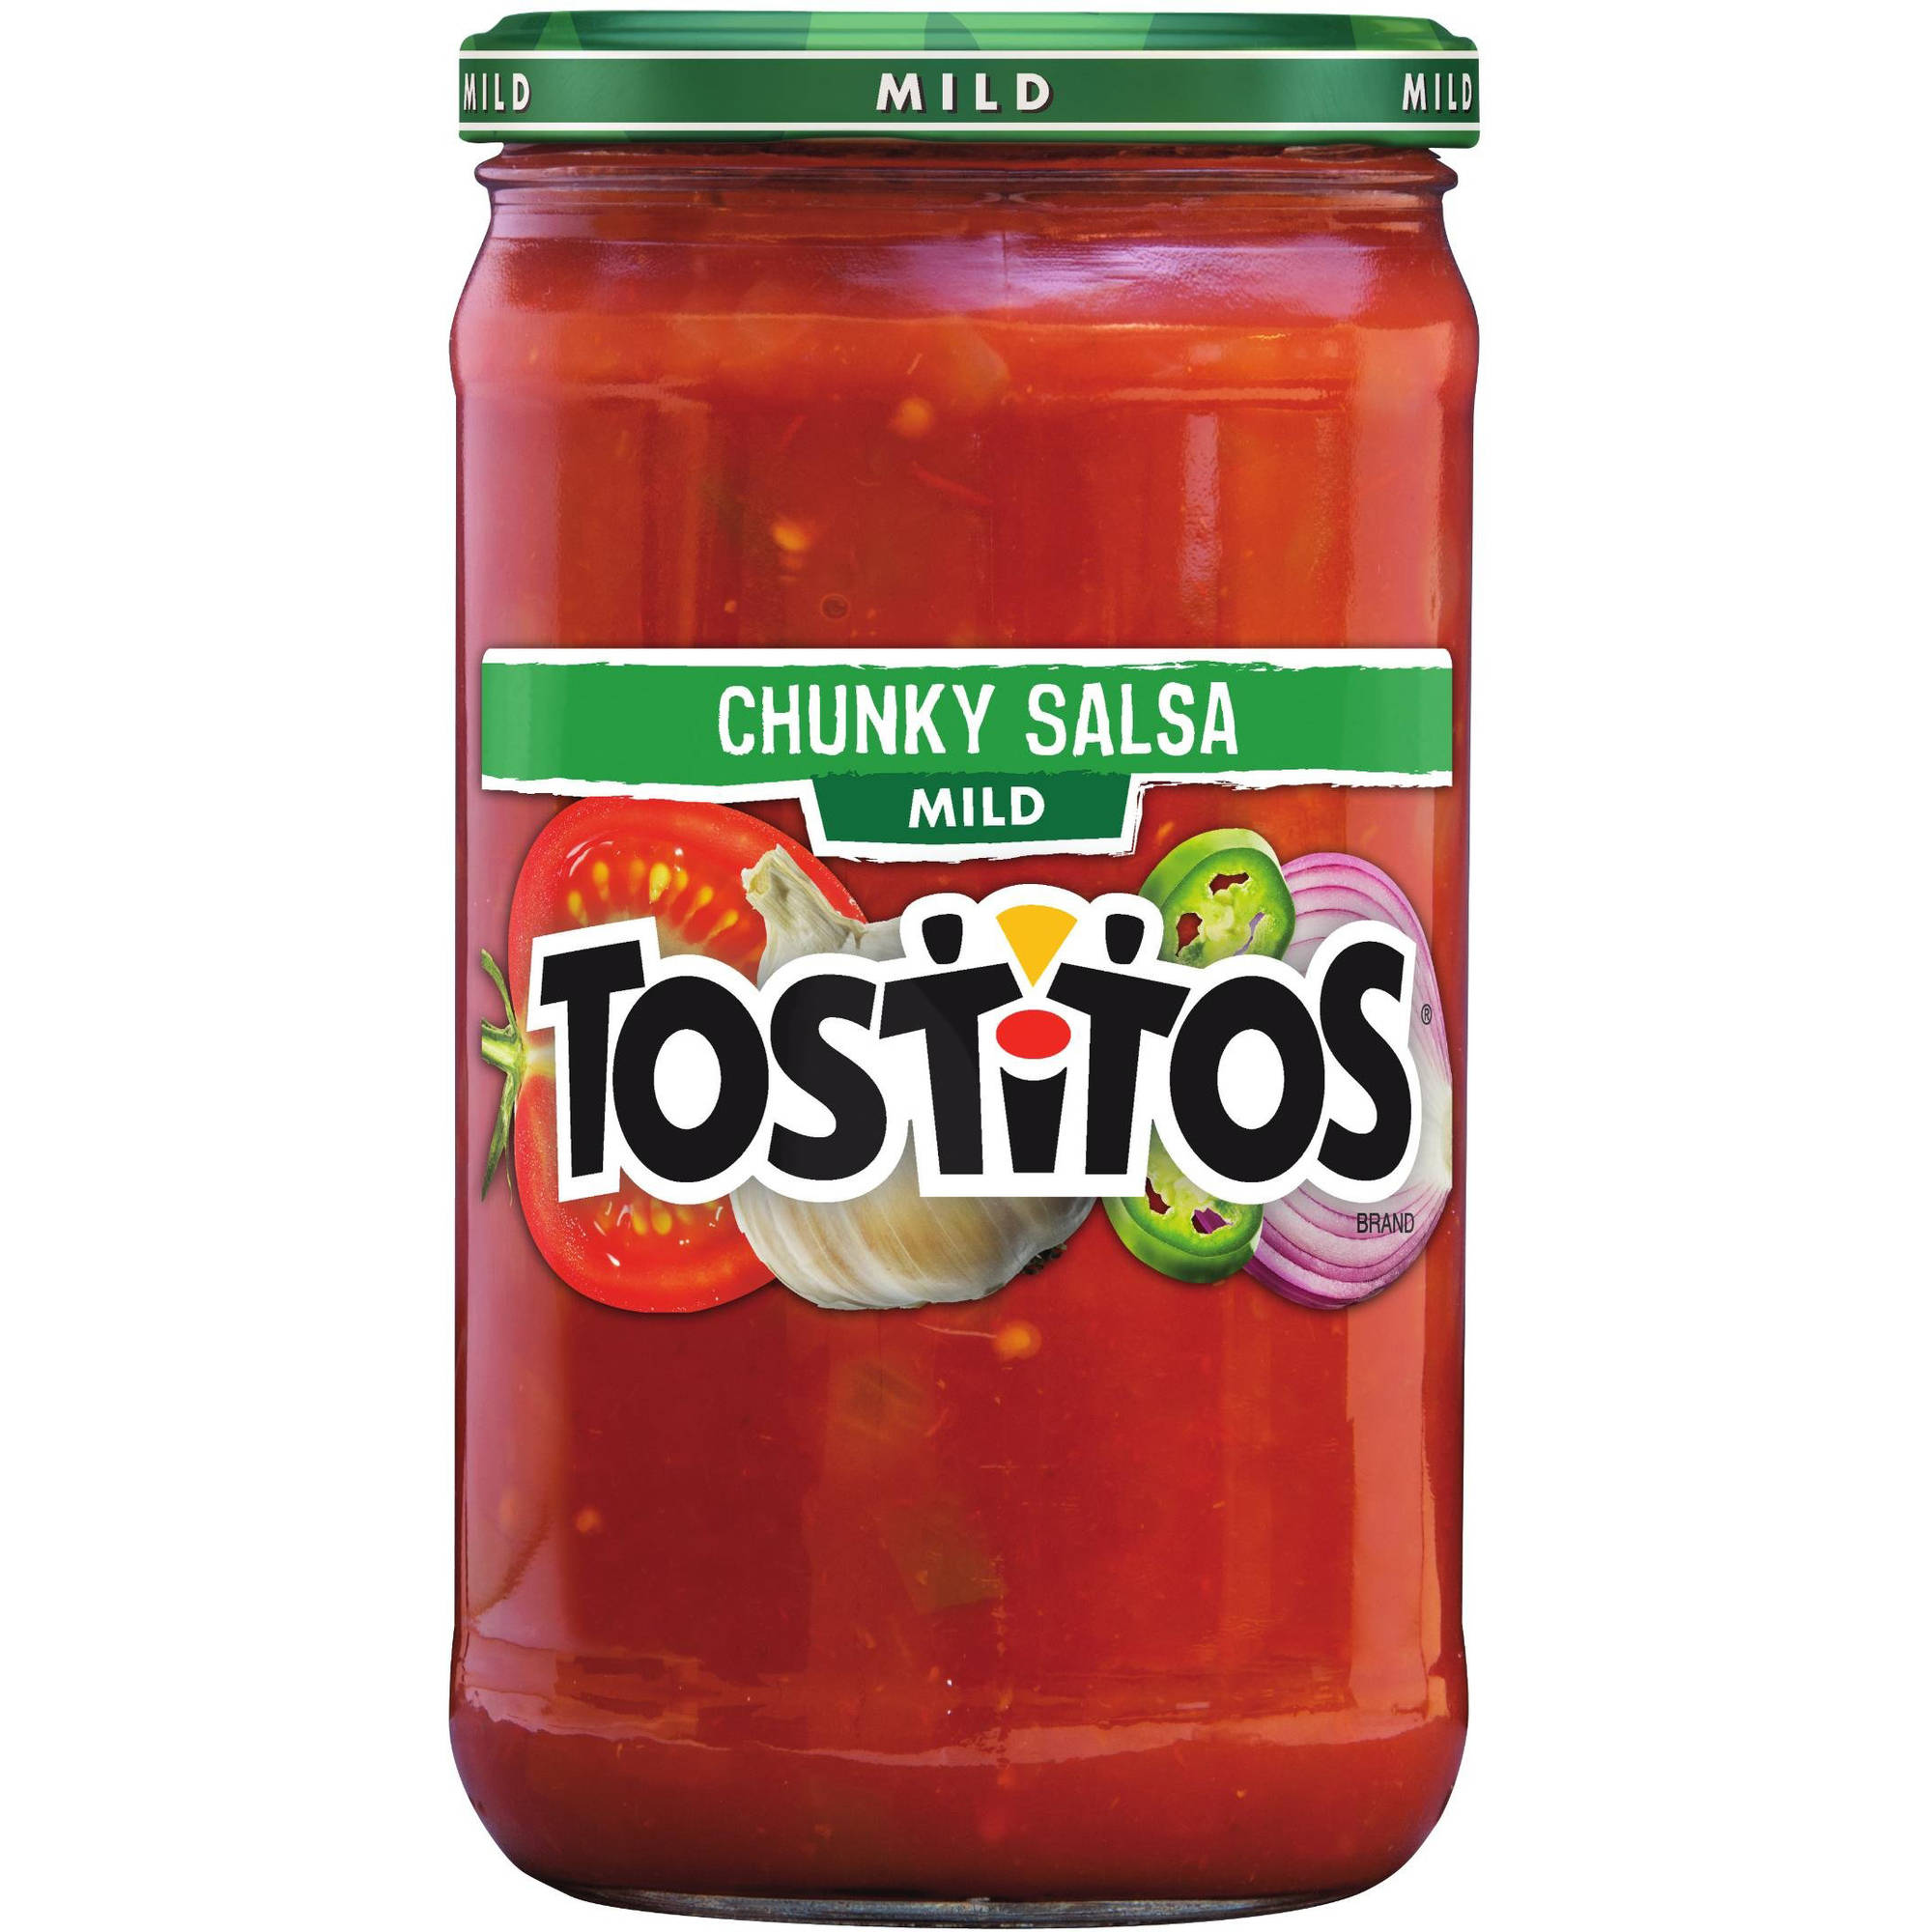 Tostitos Mild Thick & Chunky Salsa, 15.5 oz